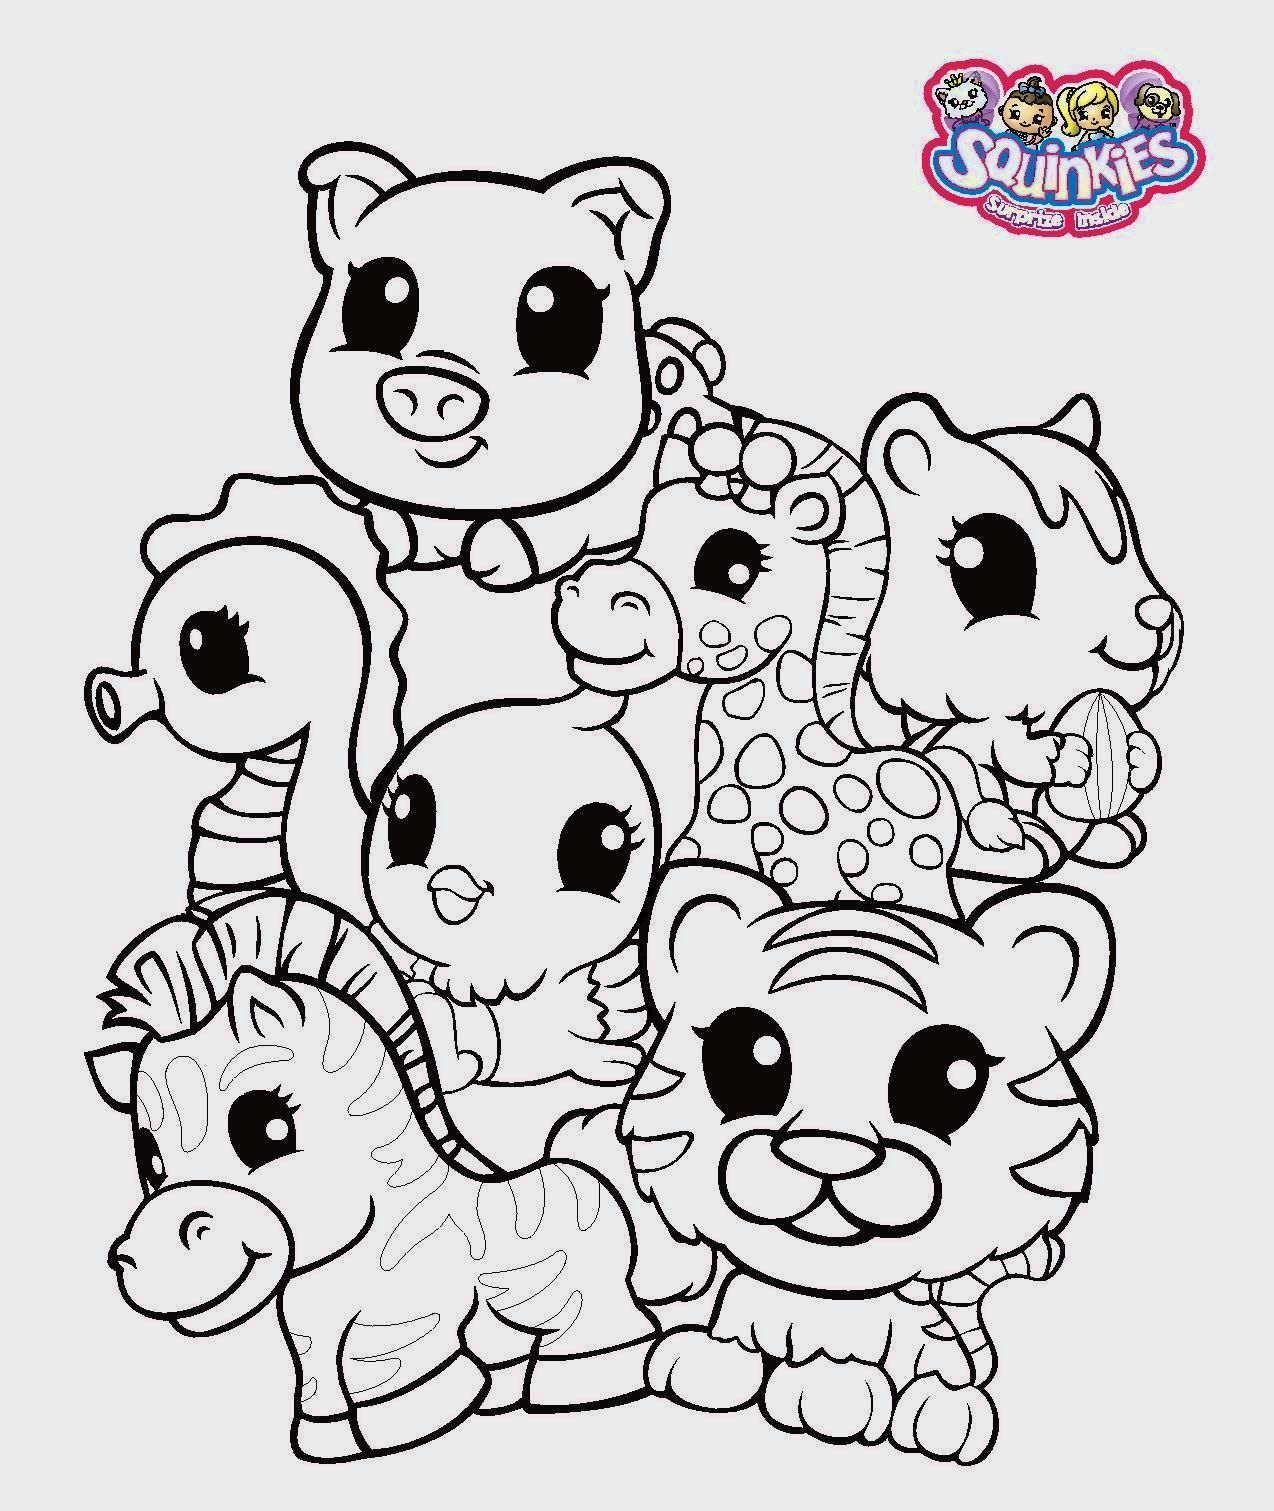 Squinkies Coloring Pages | Coloring Pages | Pinterest | Outdoor ...